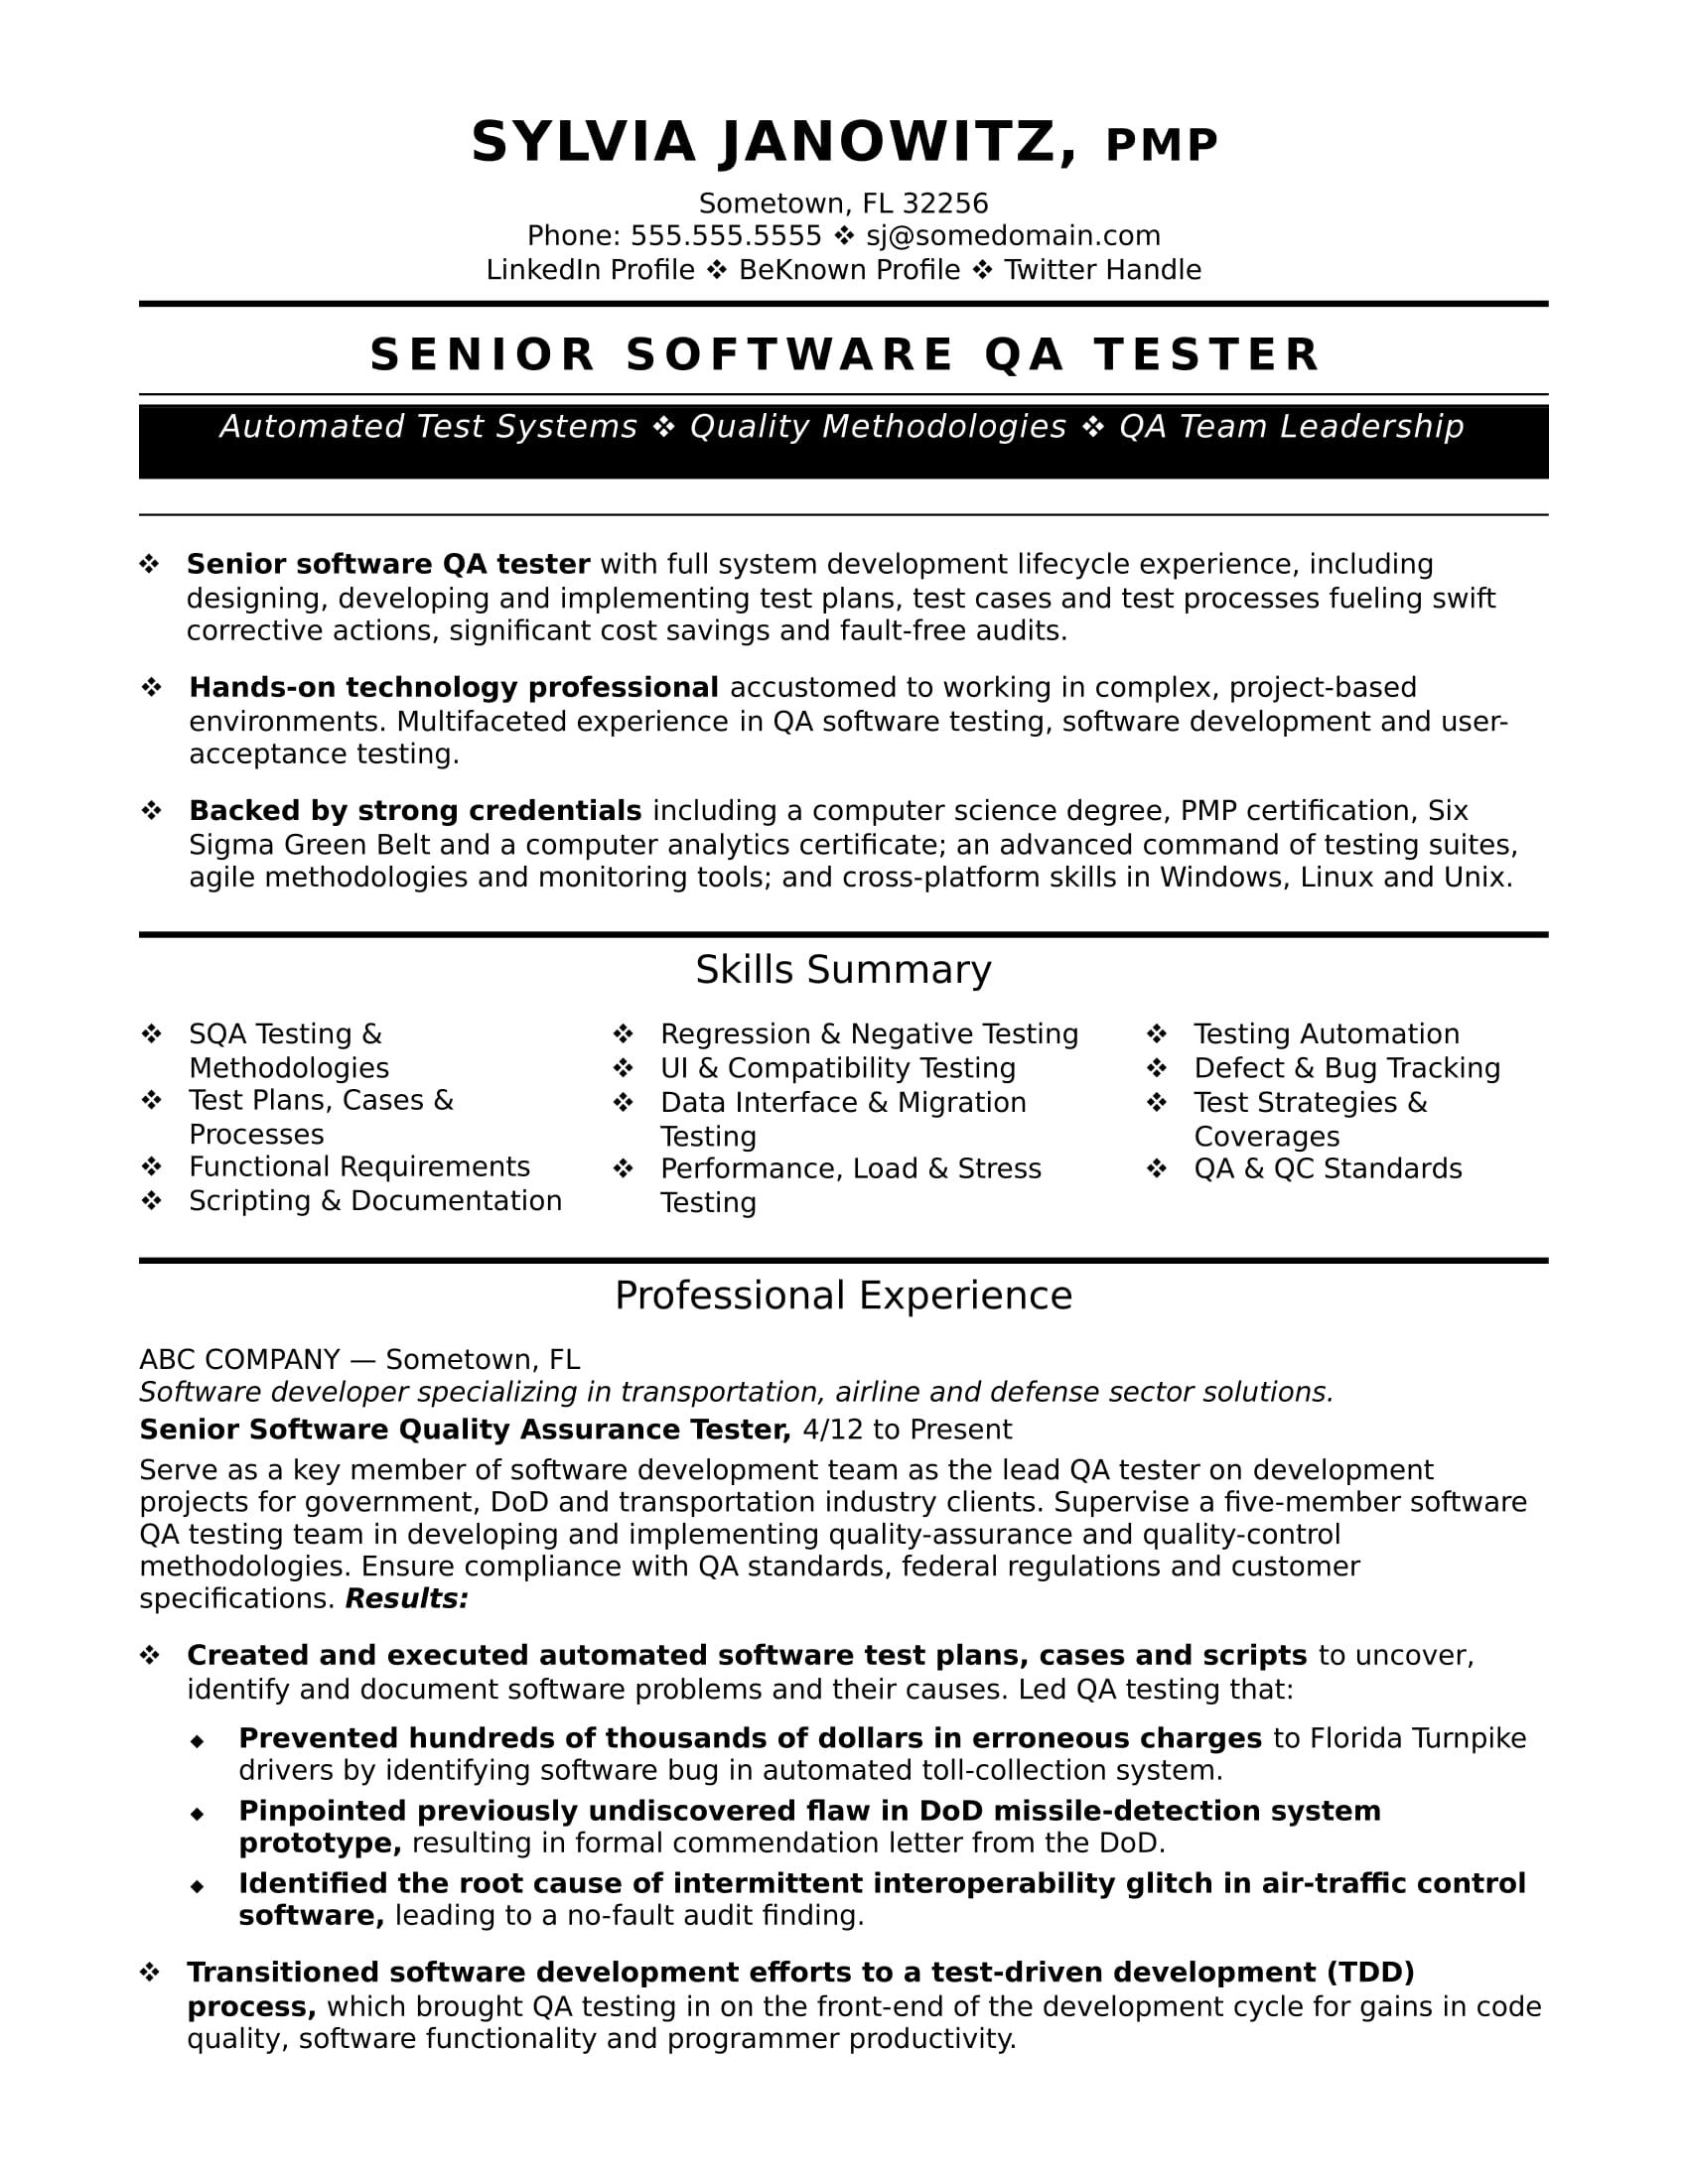 Experienced Qa Software Tester Resume Sample Job Resume Examples Resume Software Sample Resume Templates